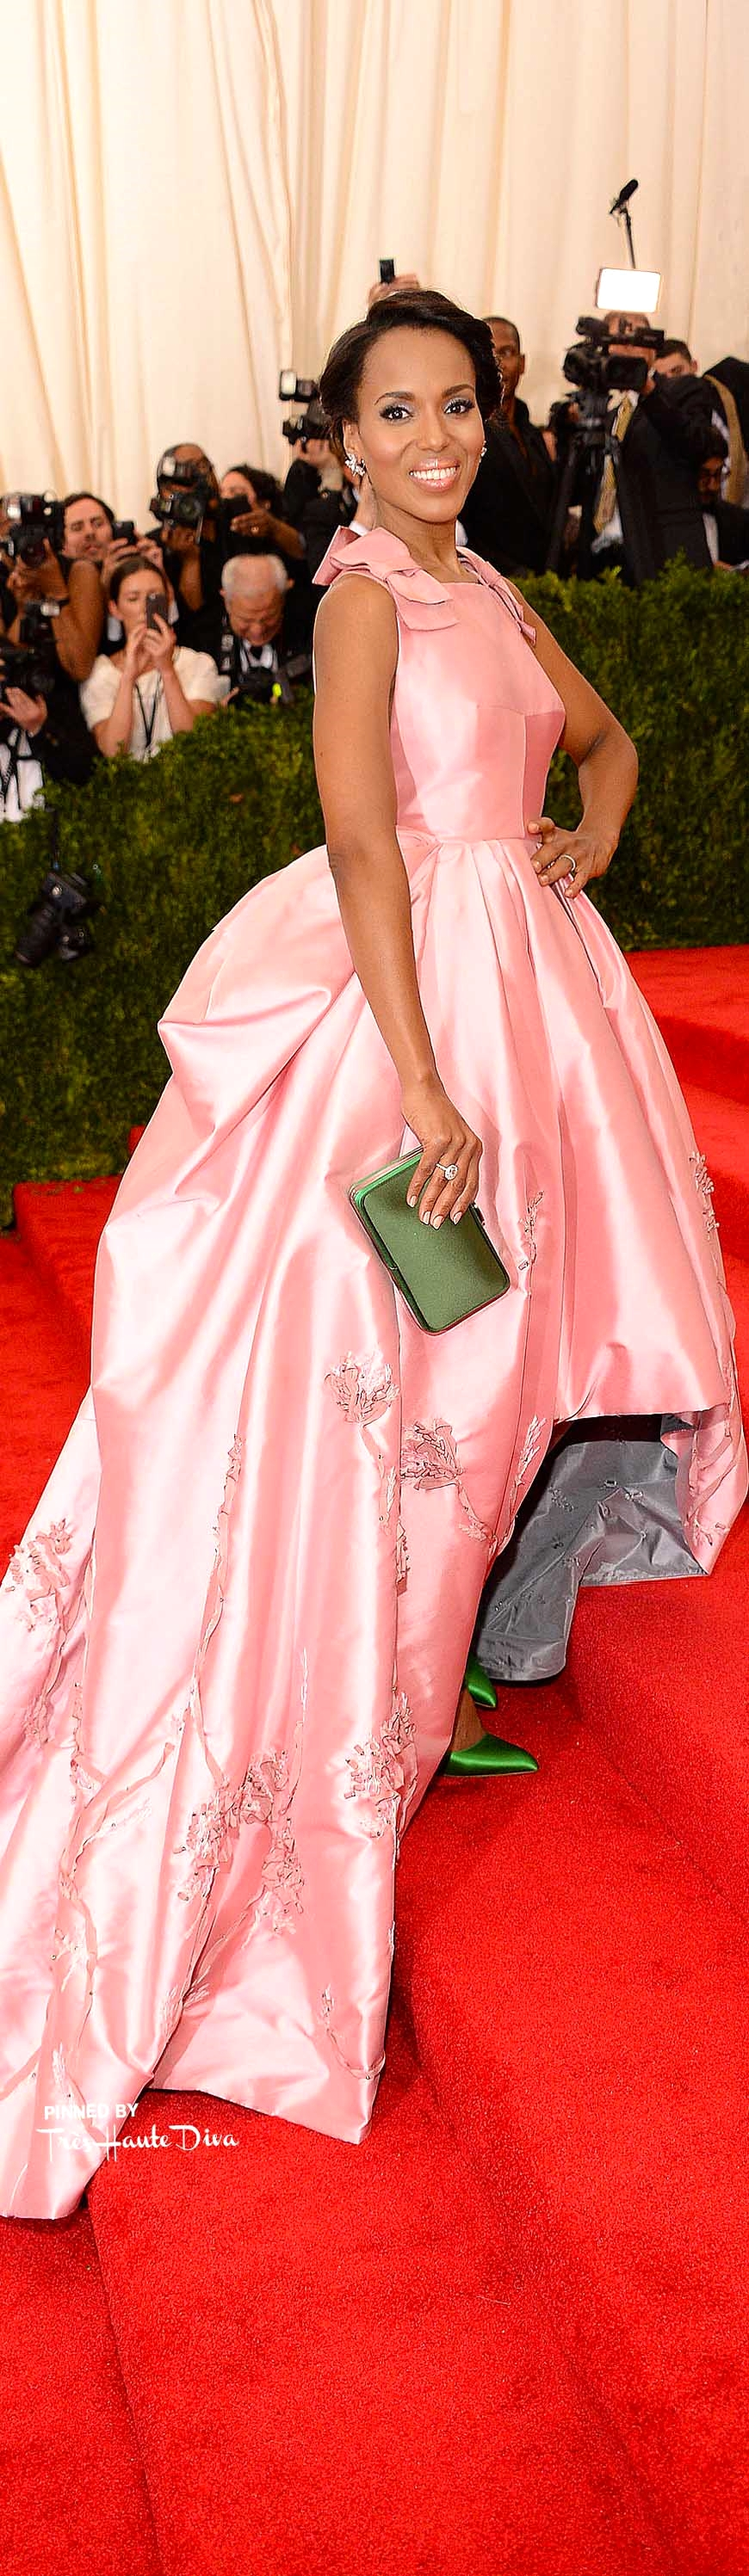 Kerry Washington in Prada                           Getty Images/ Kevin Mazur